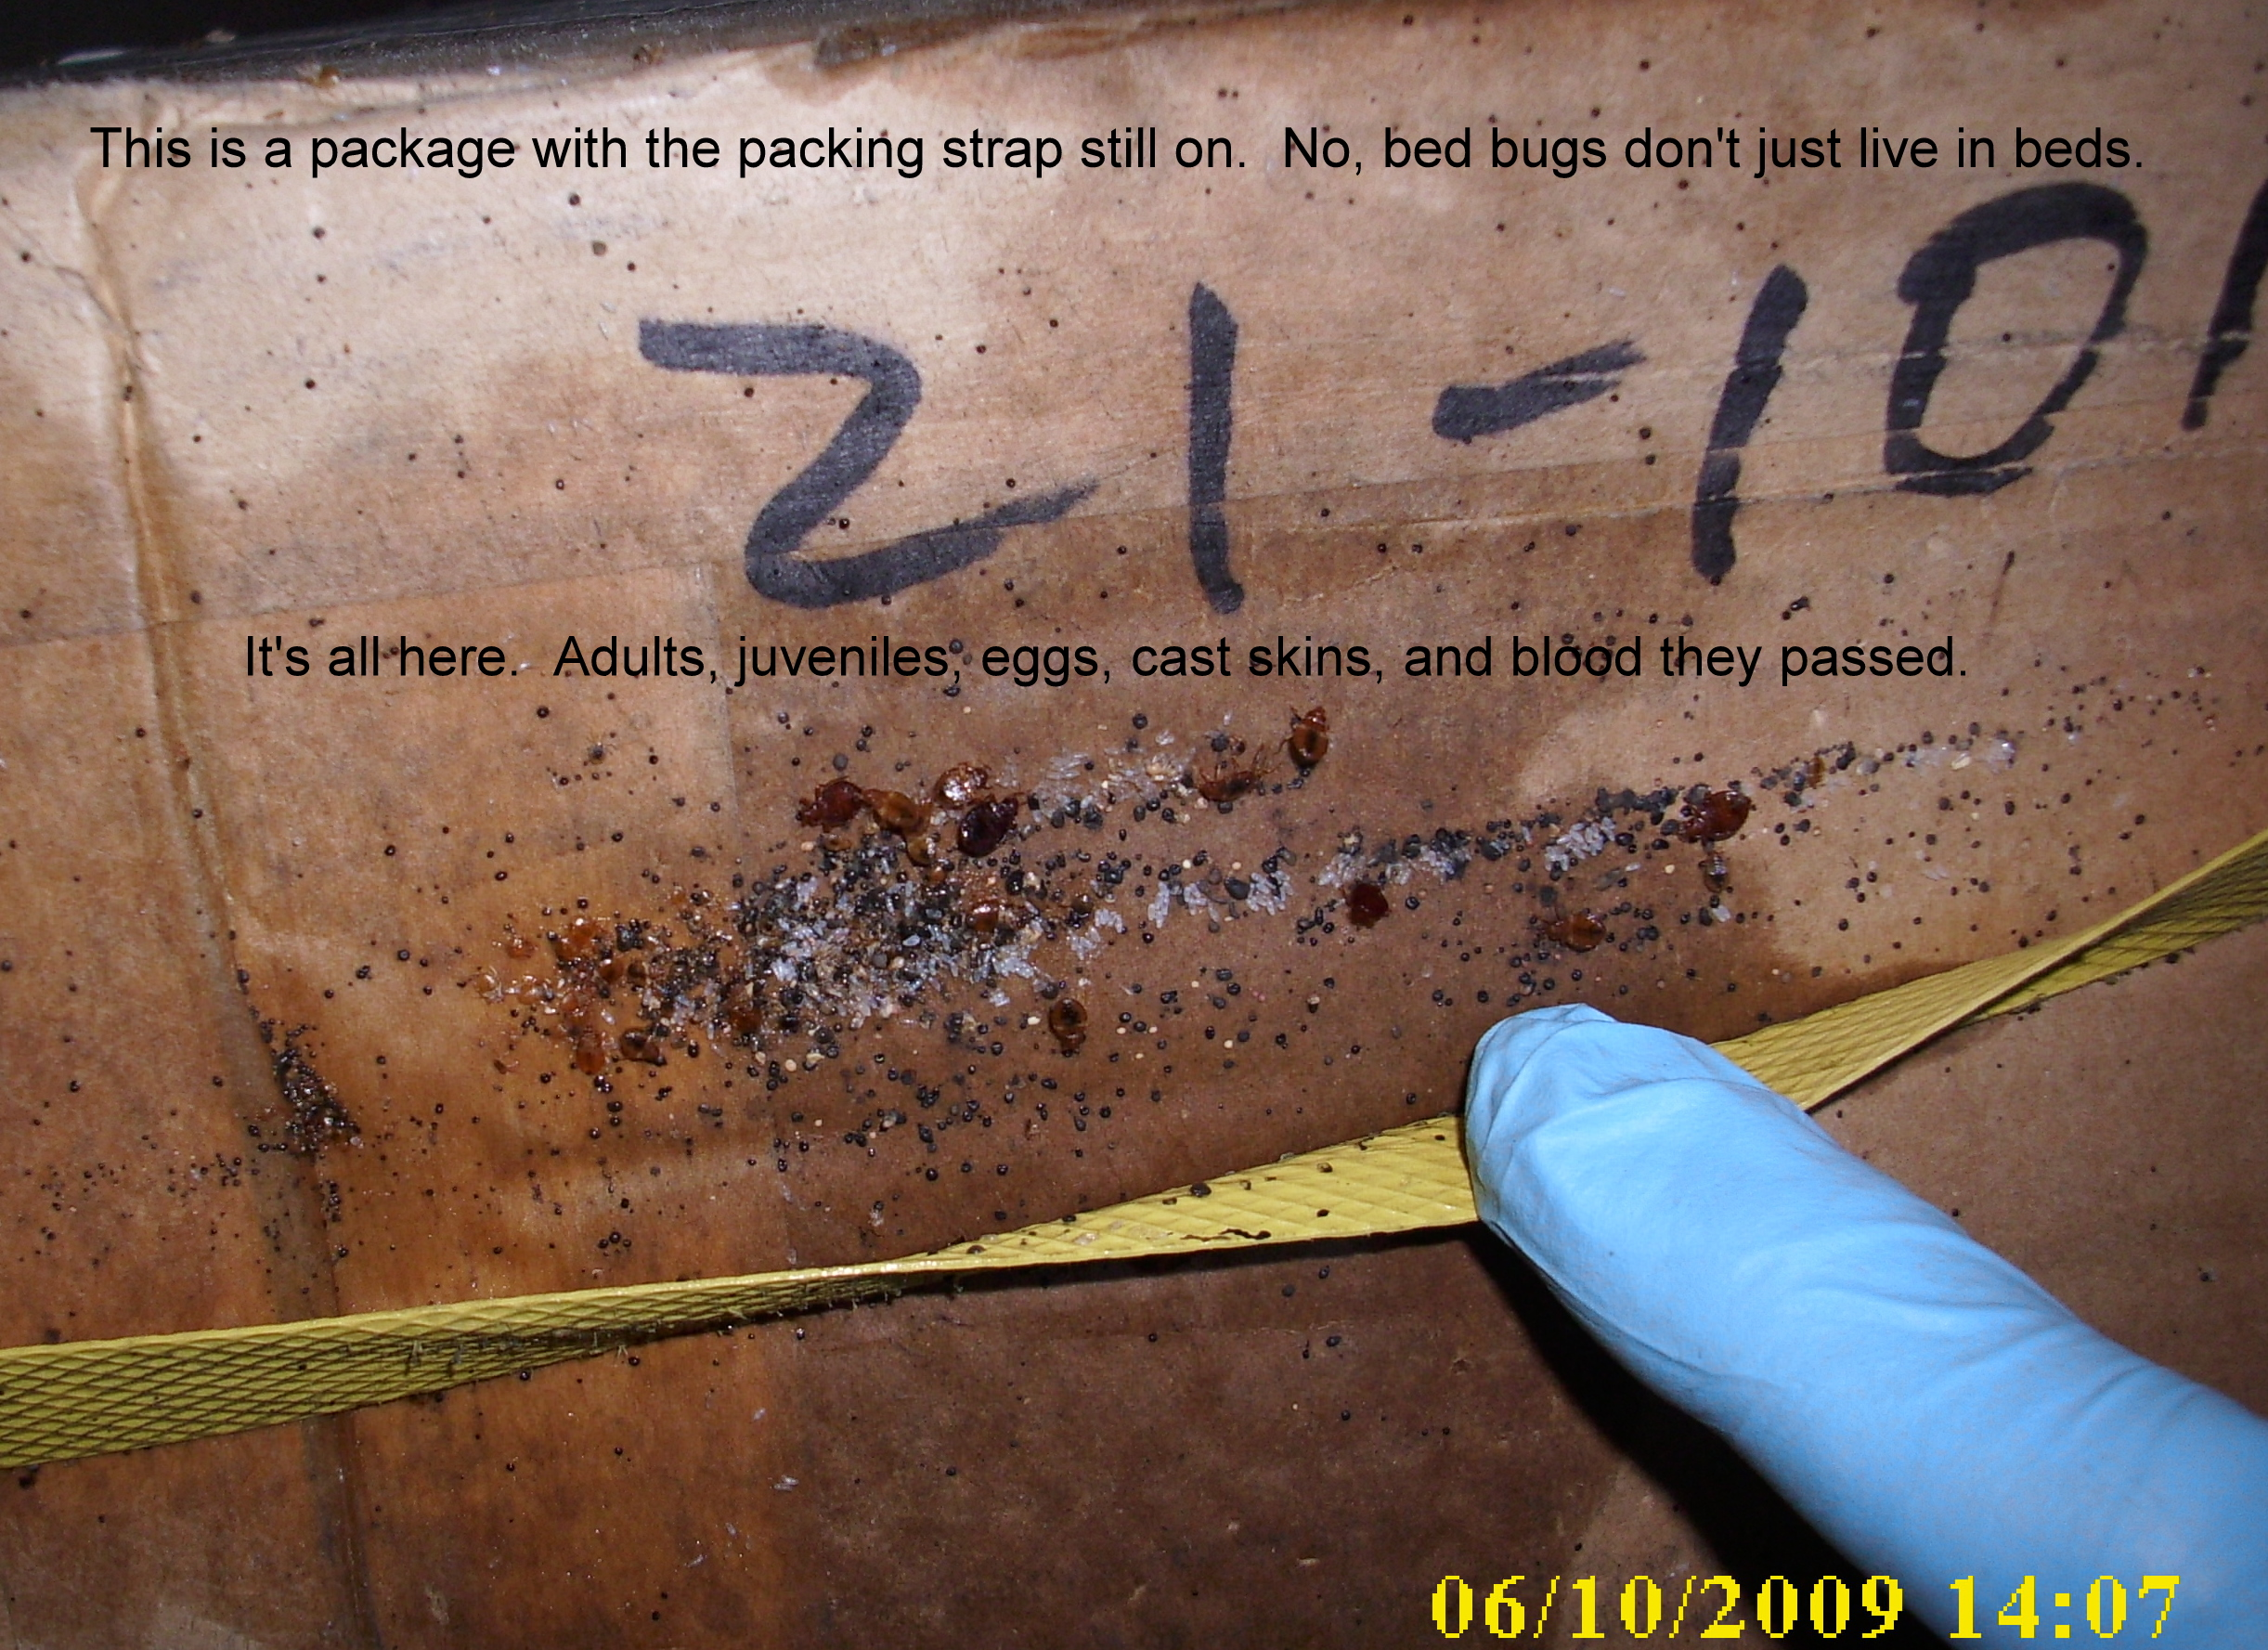 Bed Bugs Swatteam Pest Control Services Of Kentucky